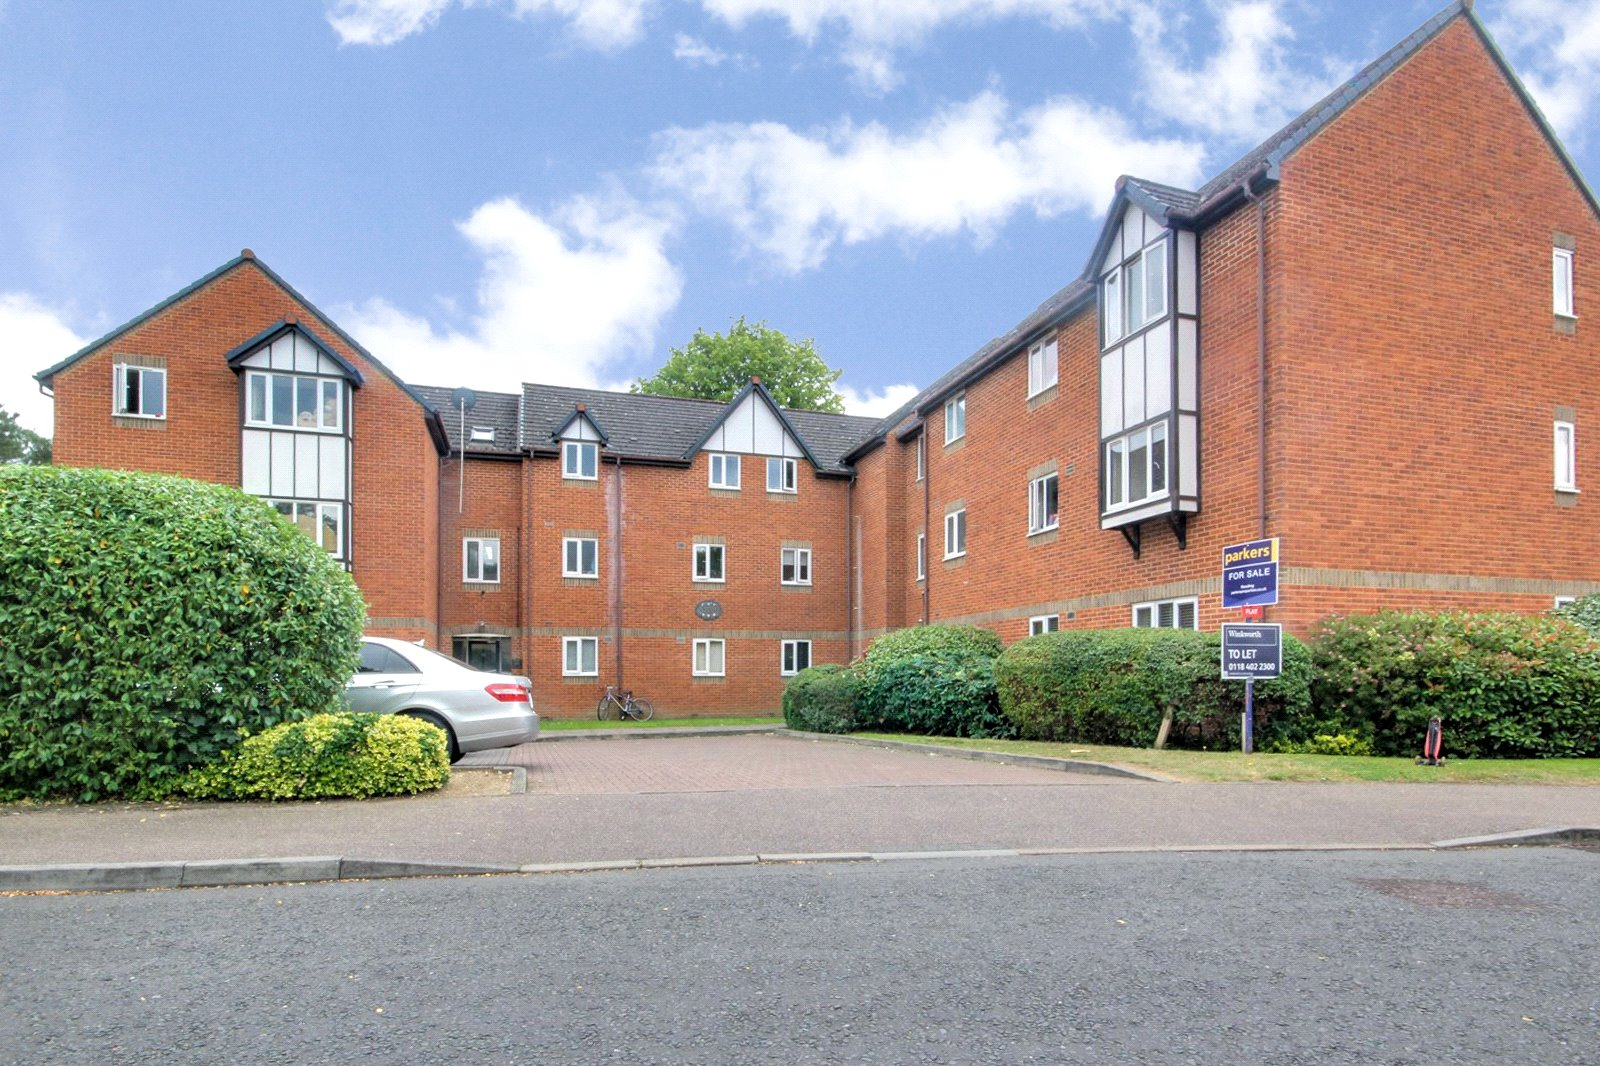 Radnor House, Rembrandt Way, Reading RG1